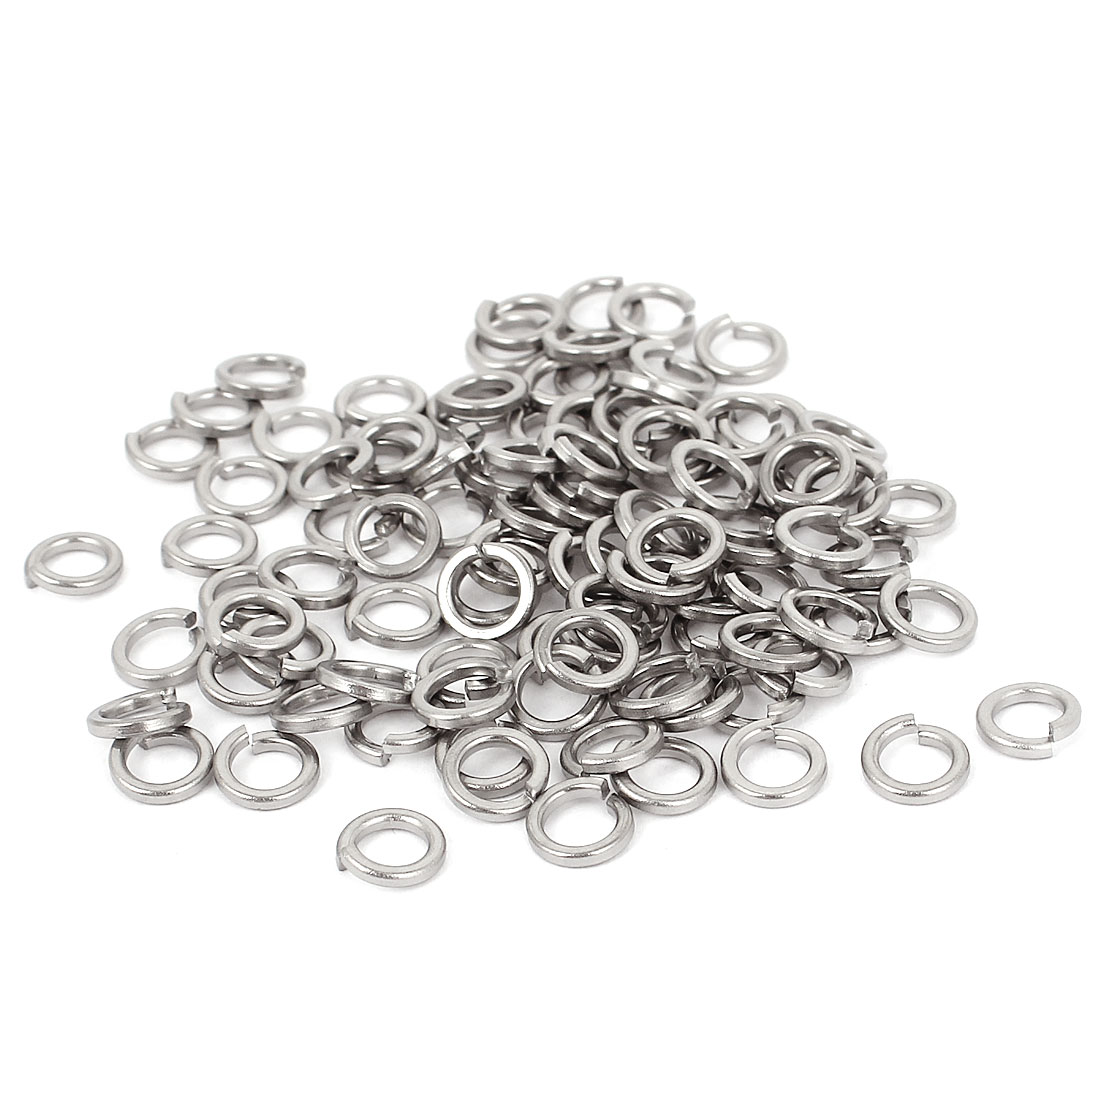 100pcs 304 Stainless Steel Split Lock Spring Washers #10 Screw Spacer Pad